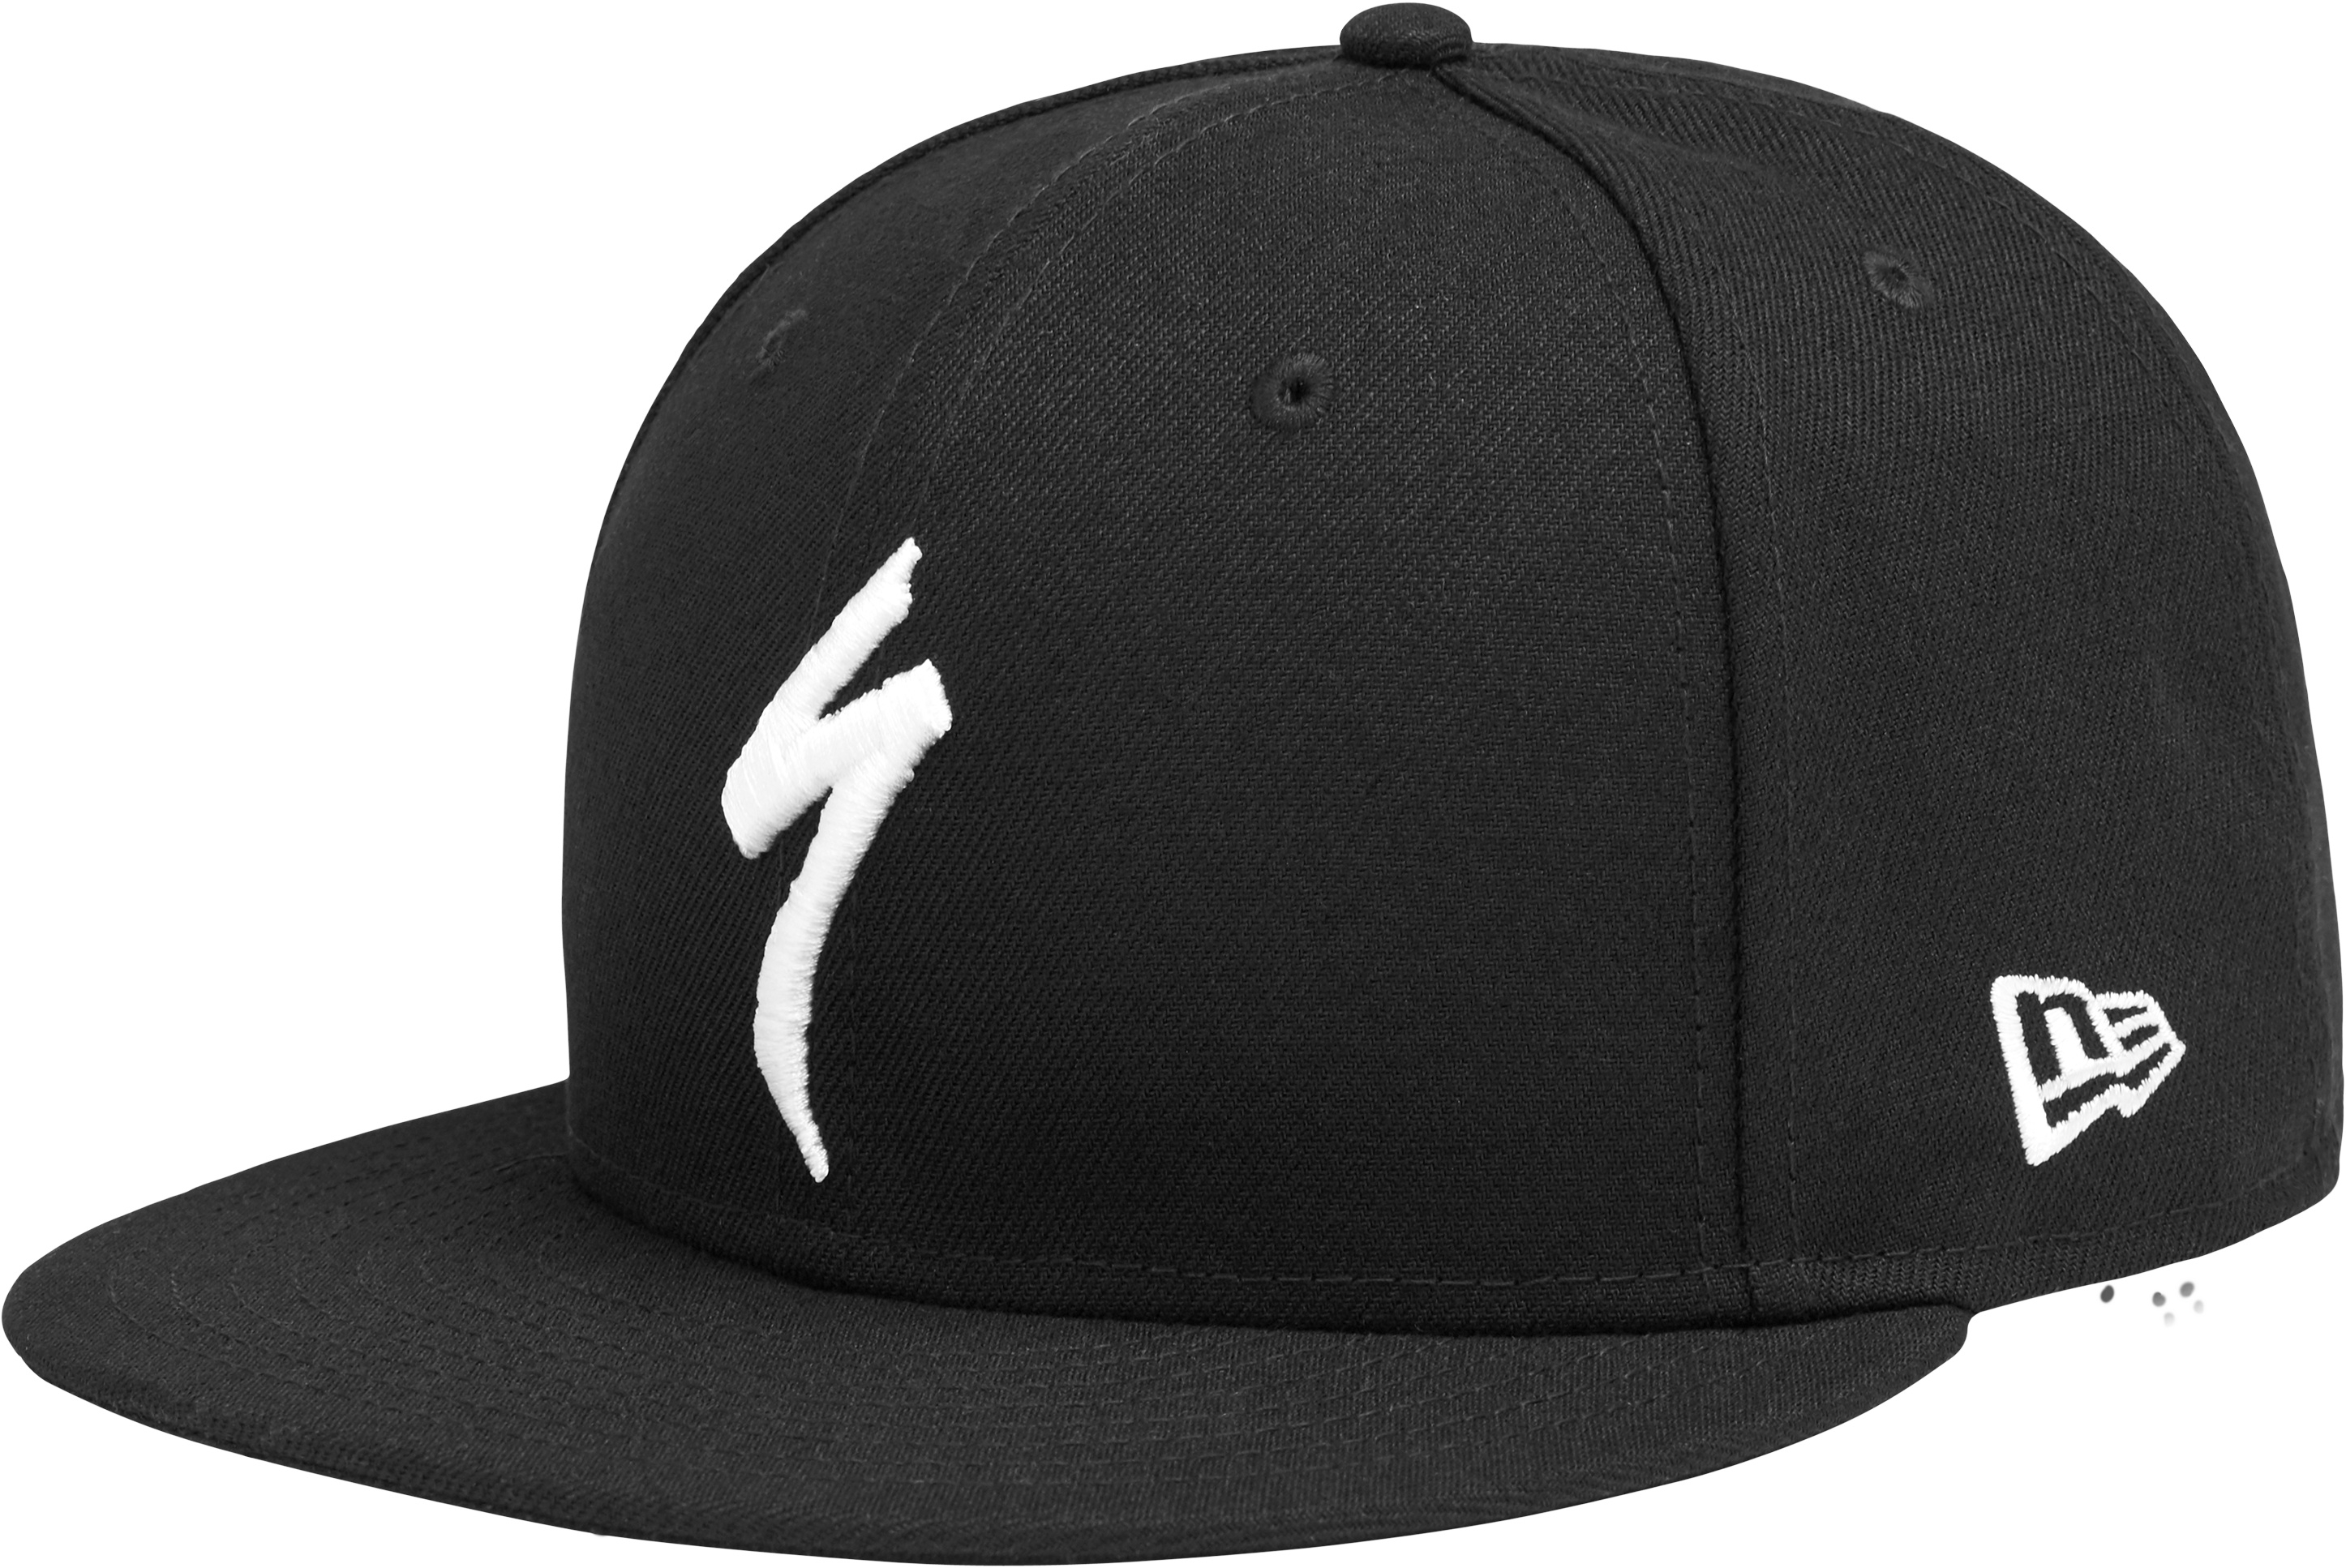 763a501a1 2019 Specialized New Era 9Fifty Snapback Cap in Black £28.00